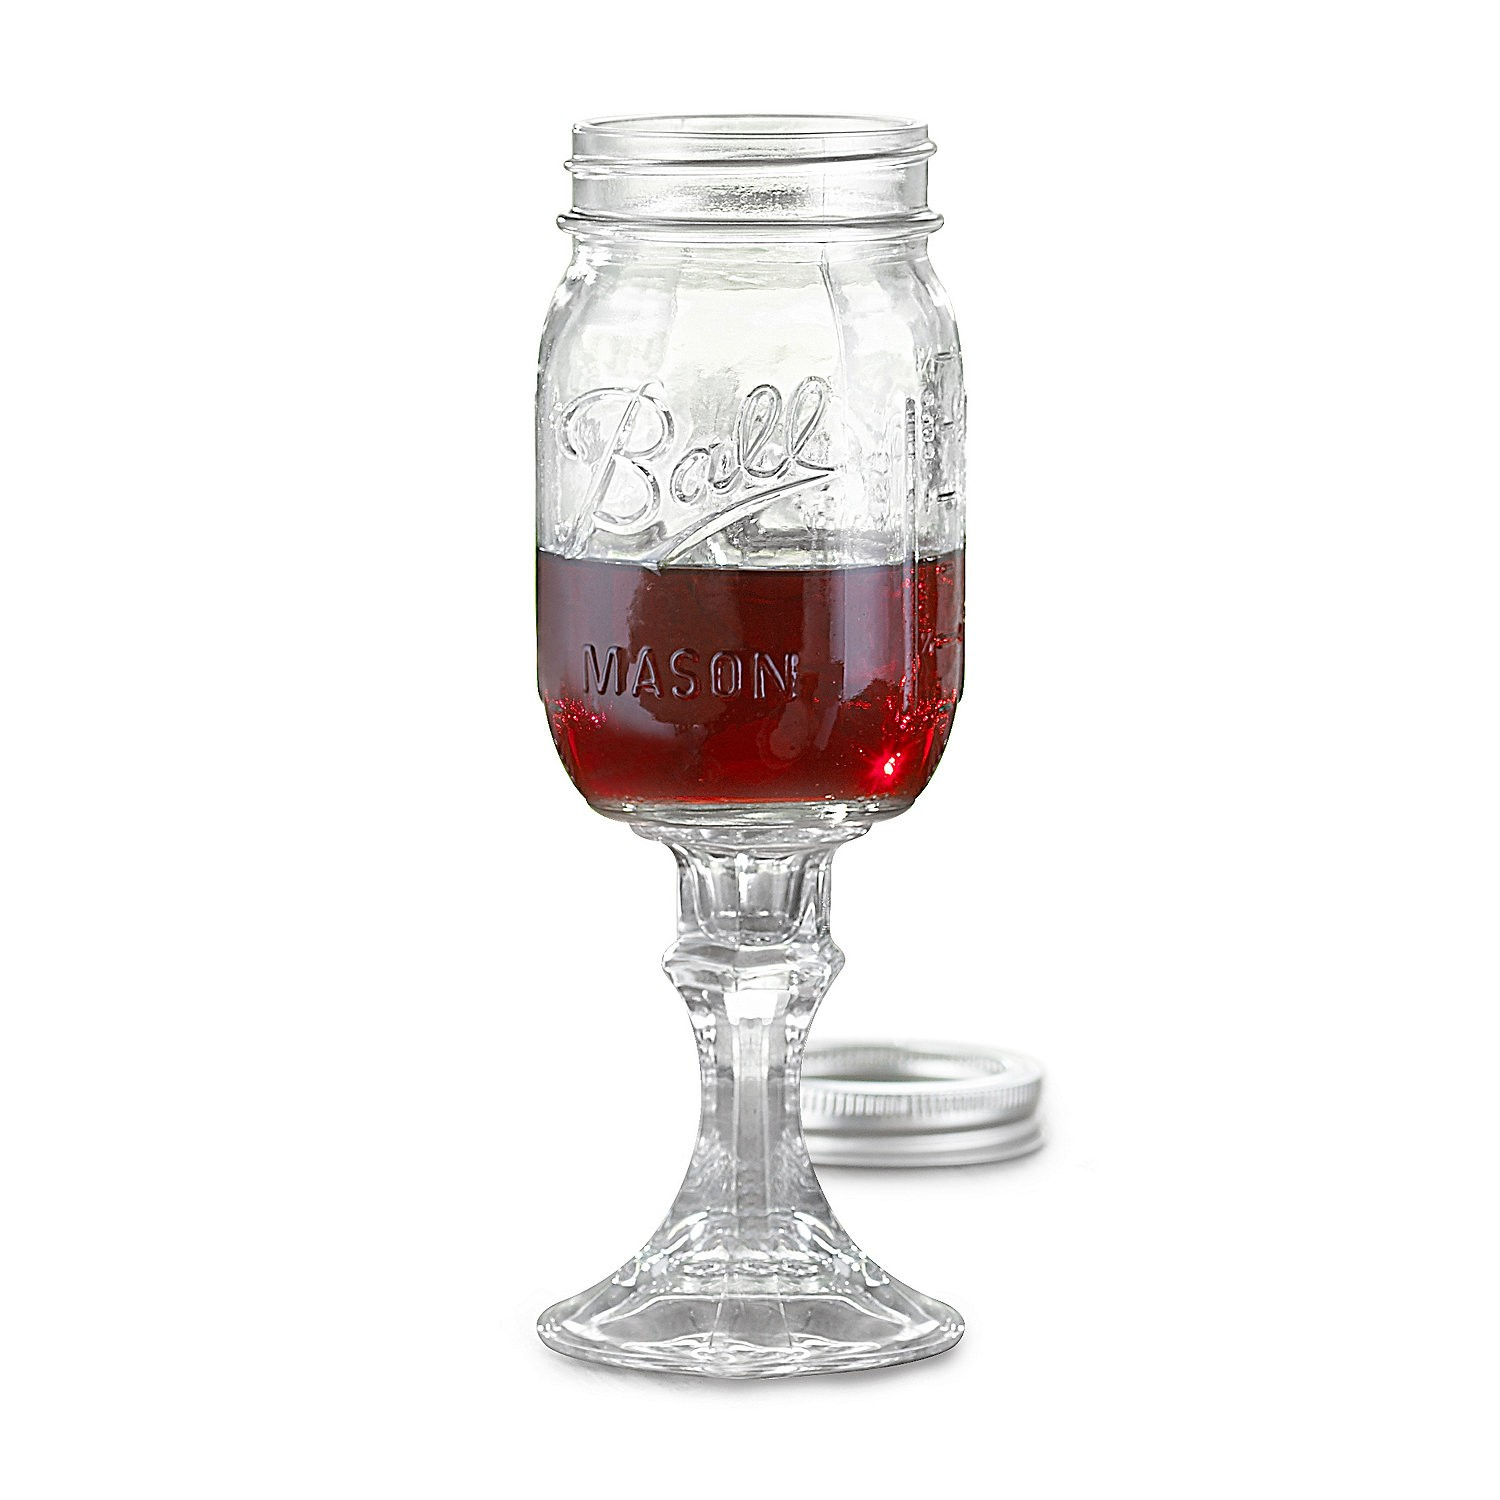 Do You Need Ideas For Unique Wine Glasses?